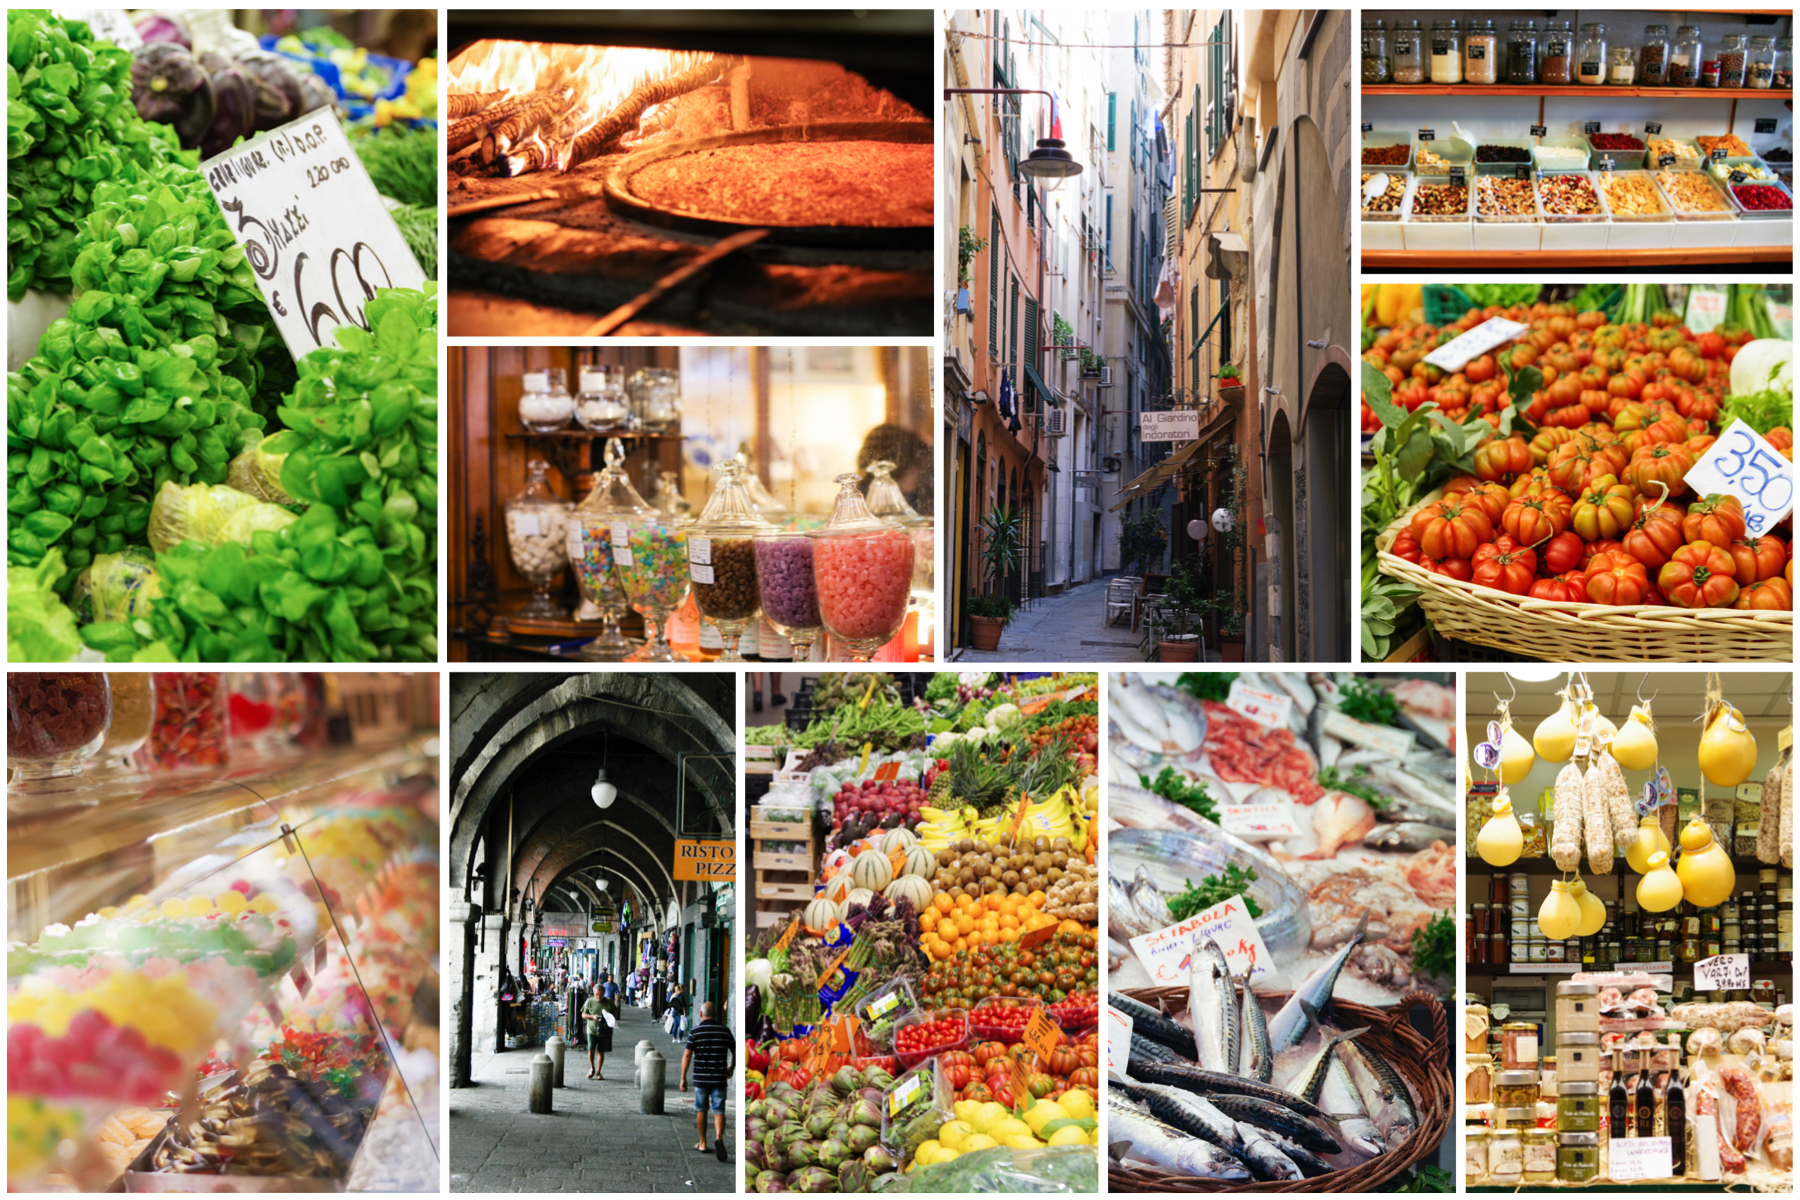 Genoa food tour: a morning stroll though the food shops of Genoa